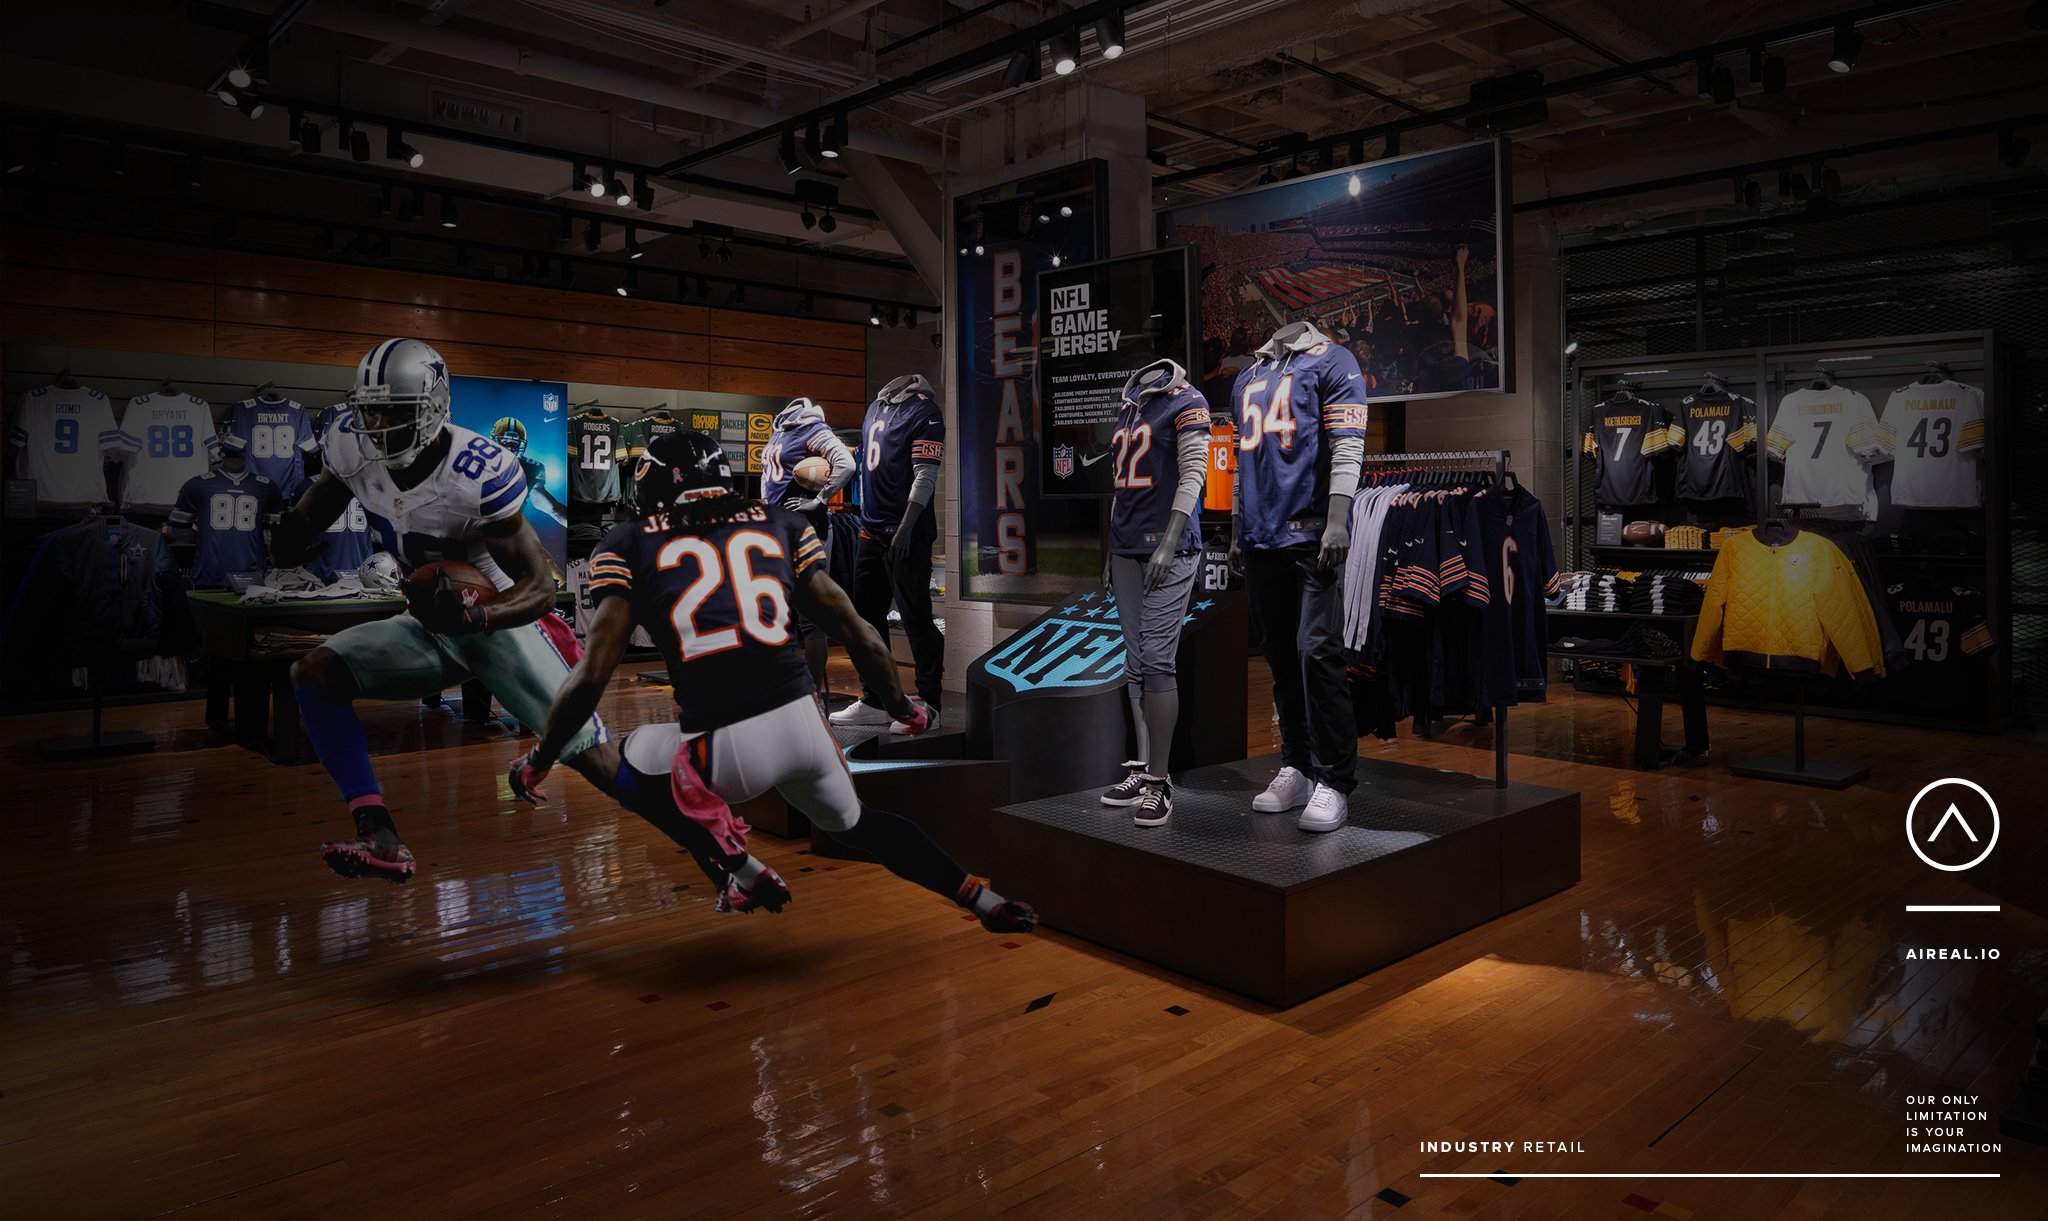 Football players in a sporting goods store? It's possible with Aireal's AR tech.